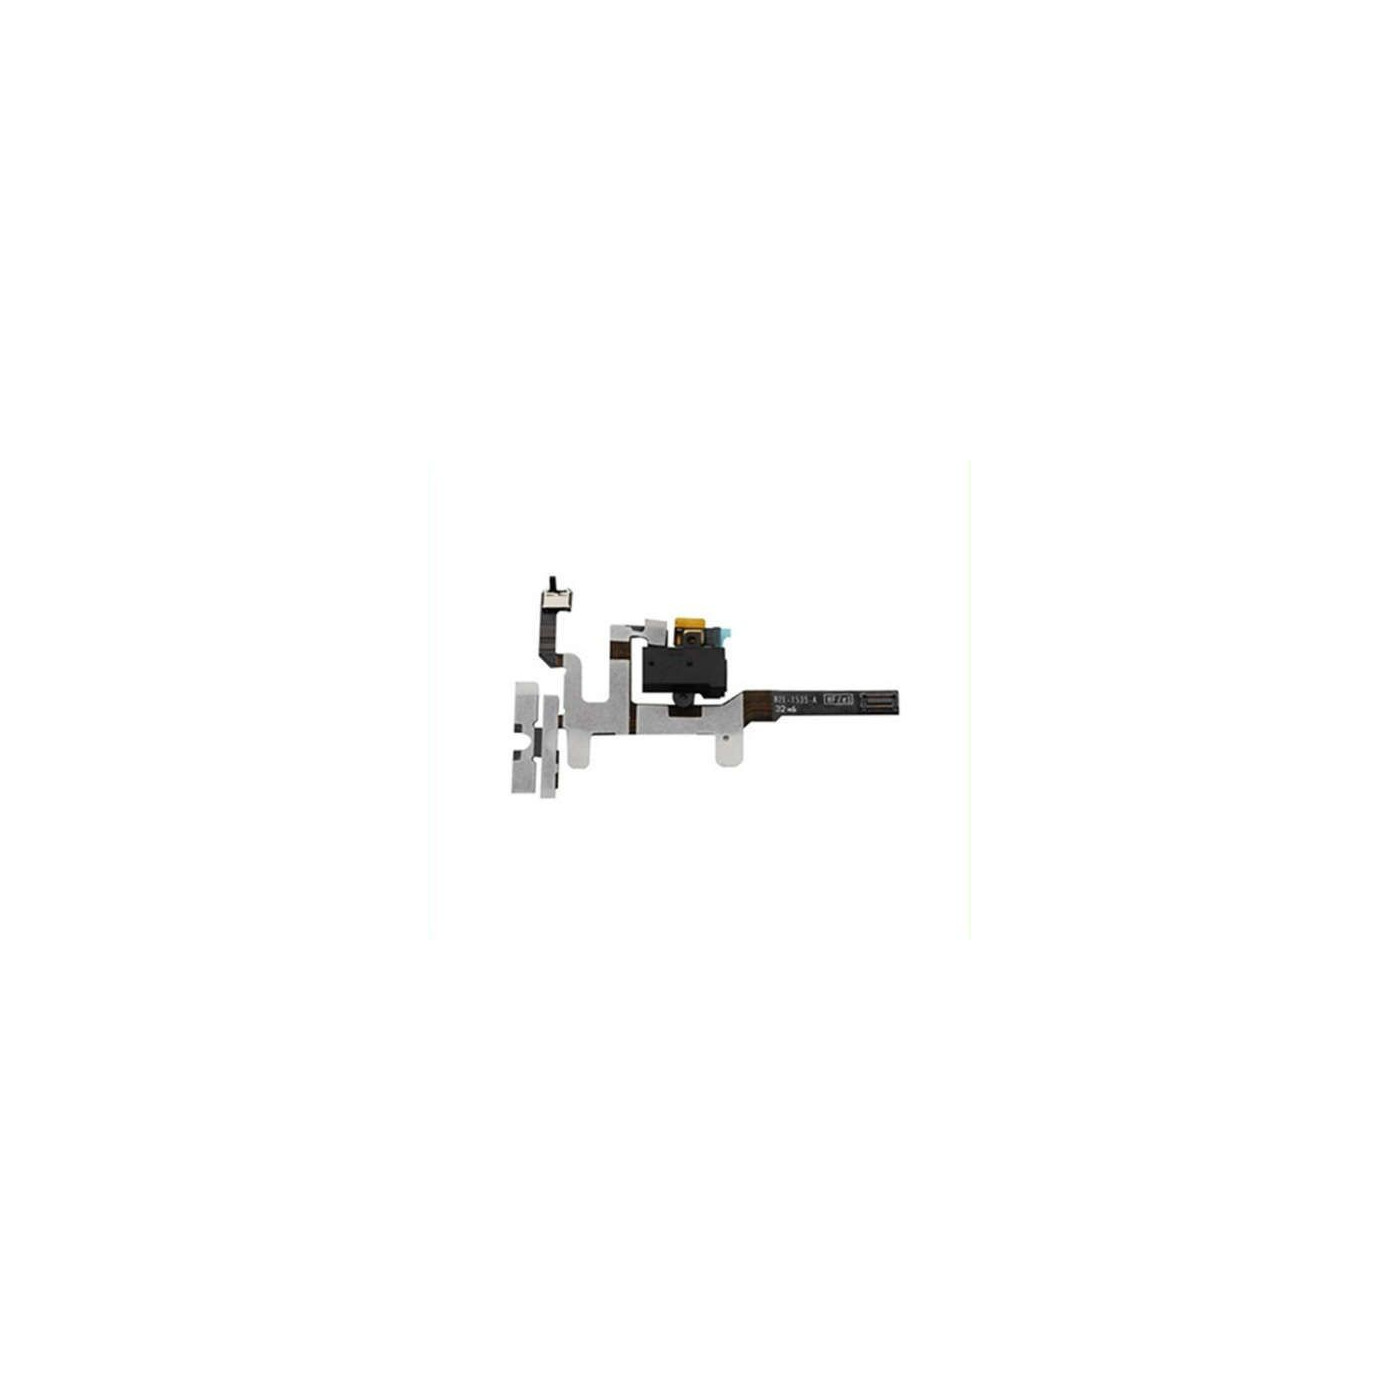 Auriculares Jack Audio Buttons para Apple iPhone 4S 4S botón negro Flex Cable plano